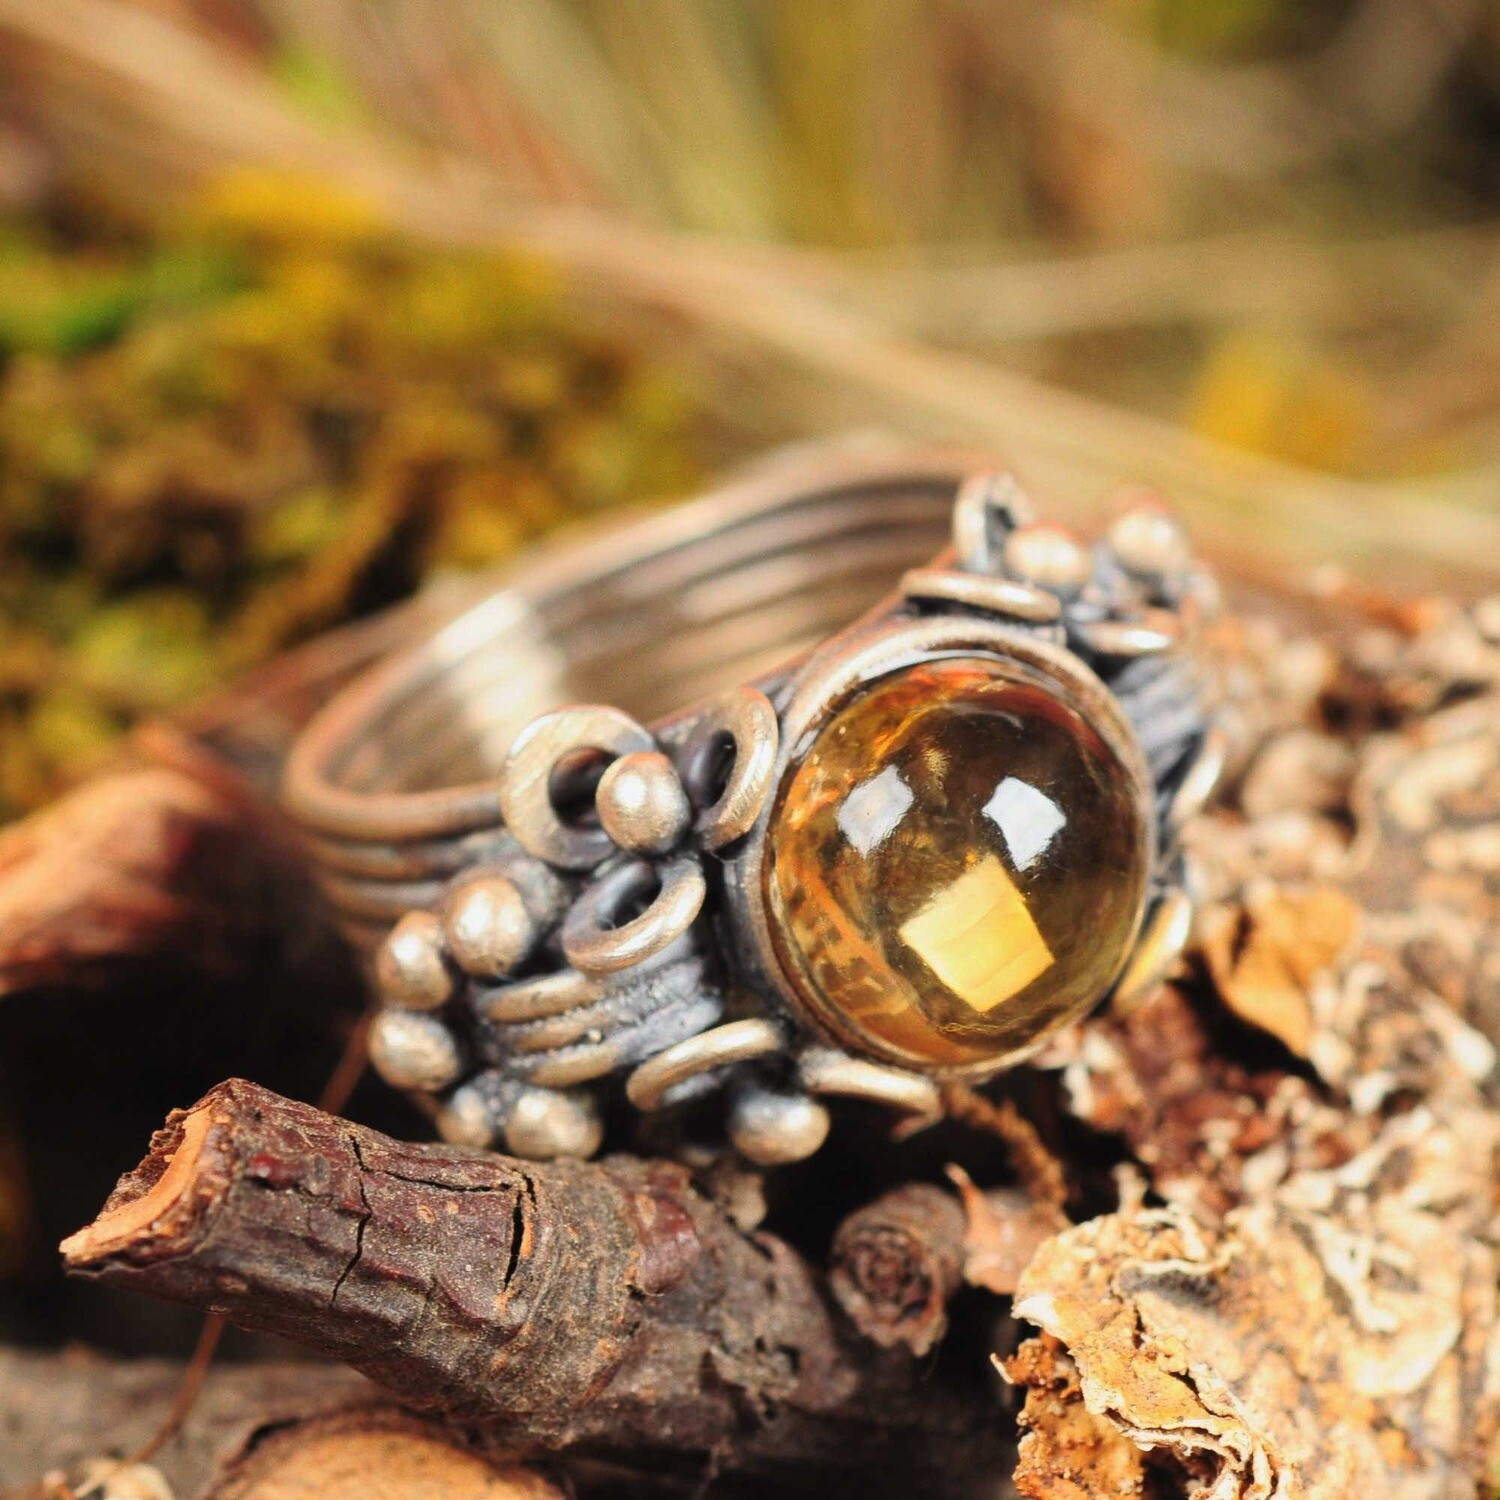 Ring in massief zilver - UNICA -Lize Mommaerts - Maat 58